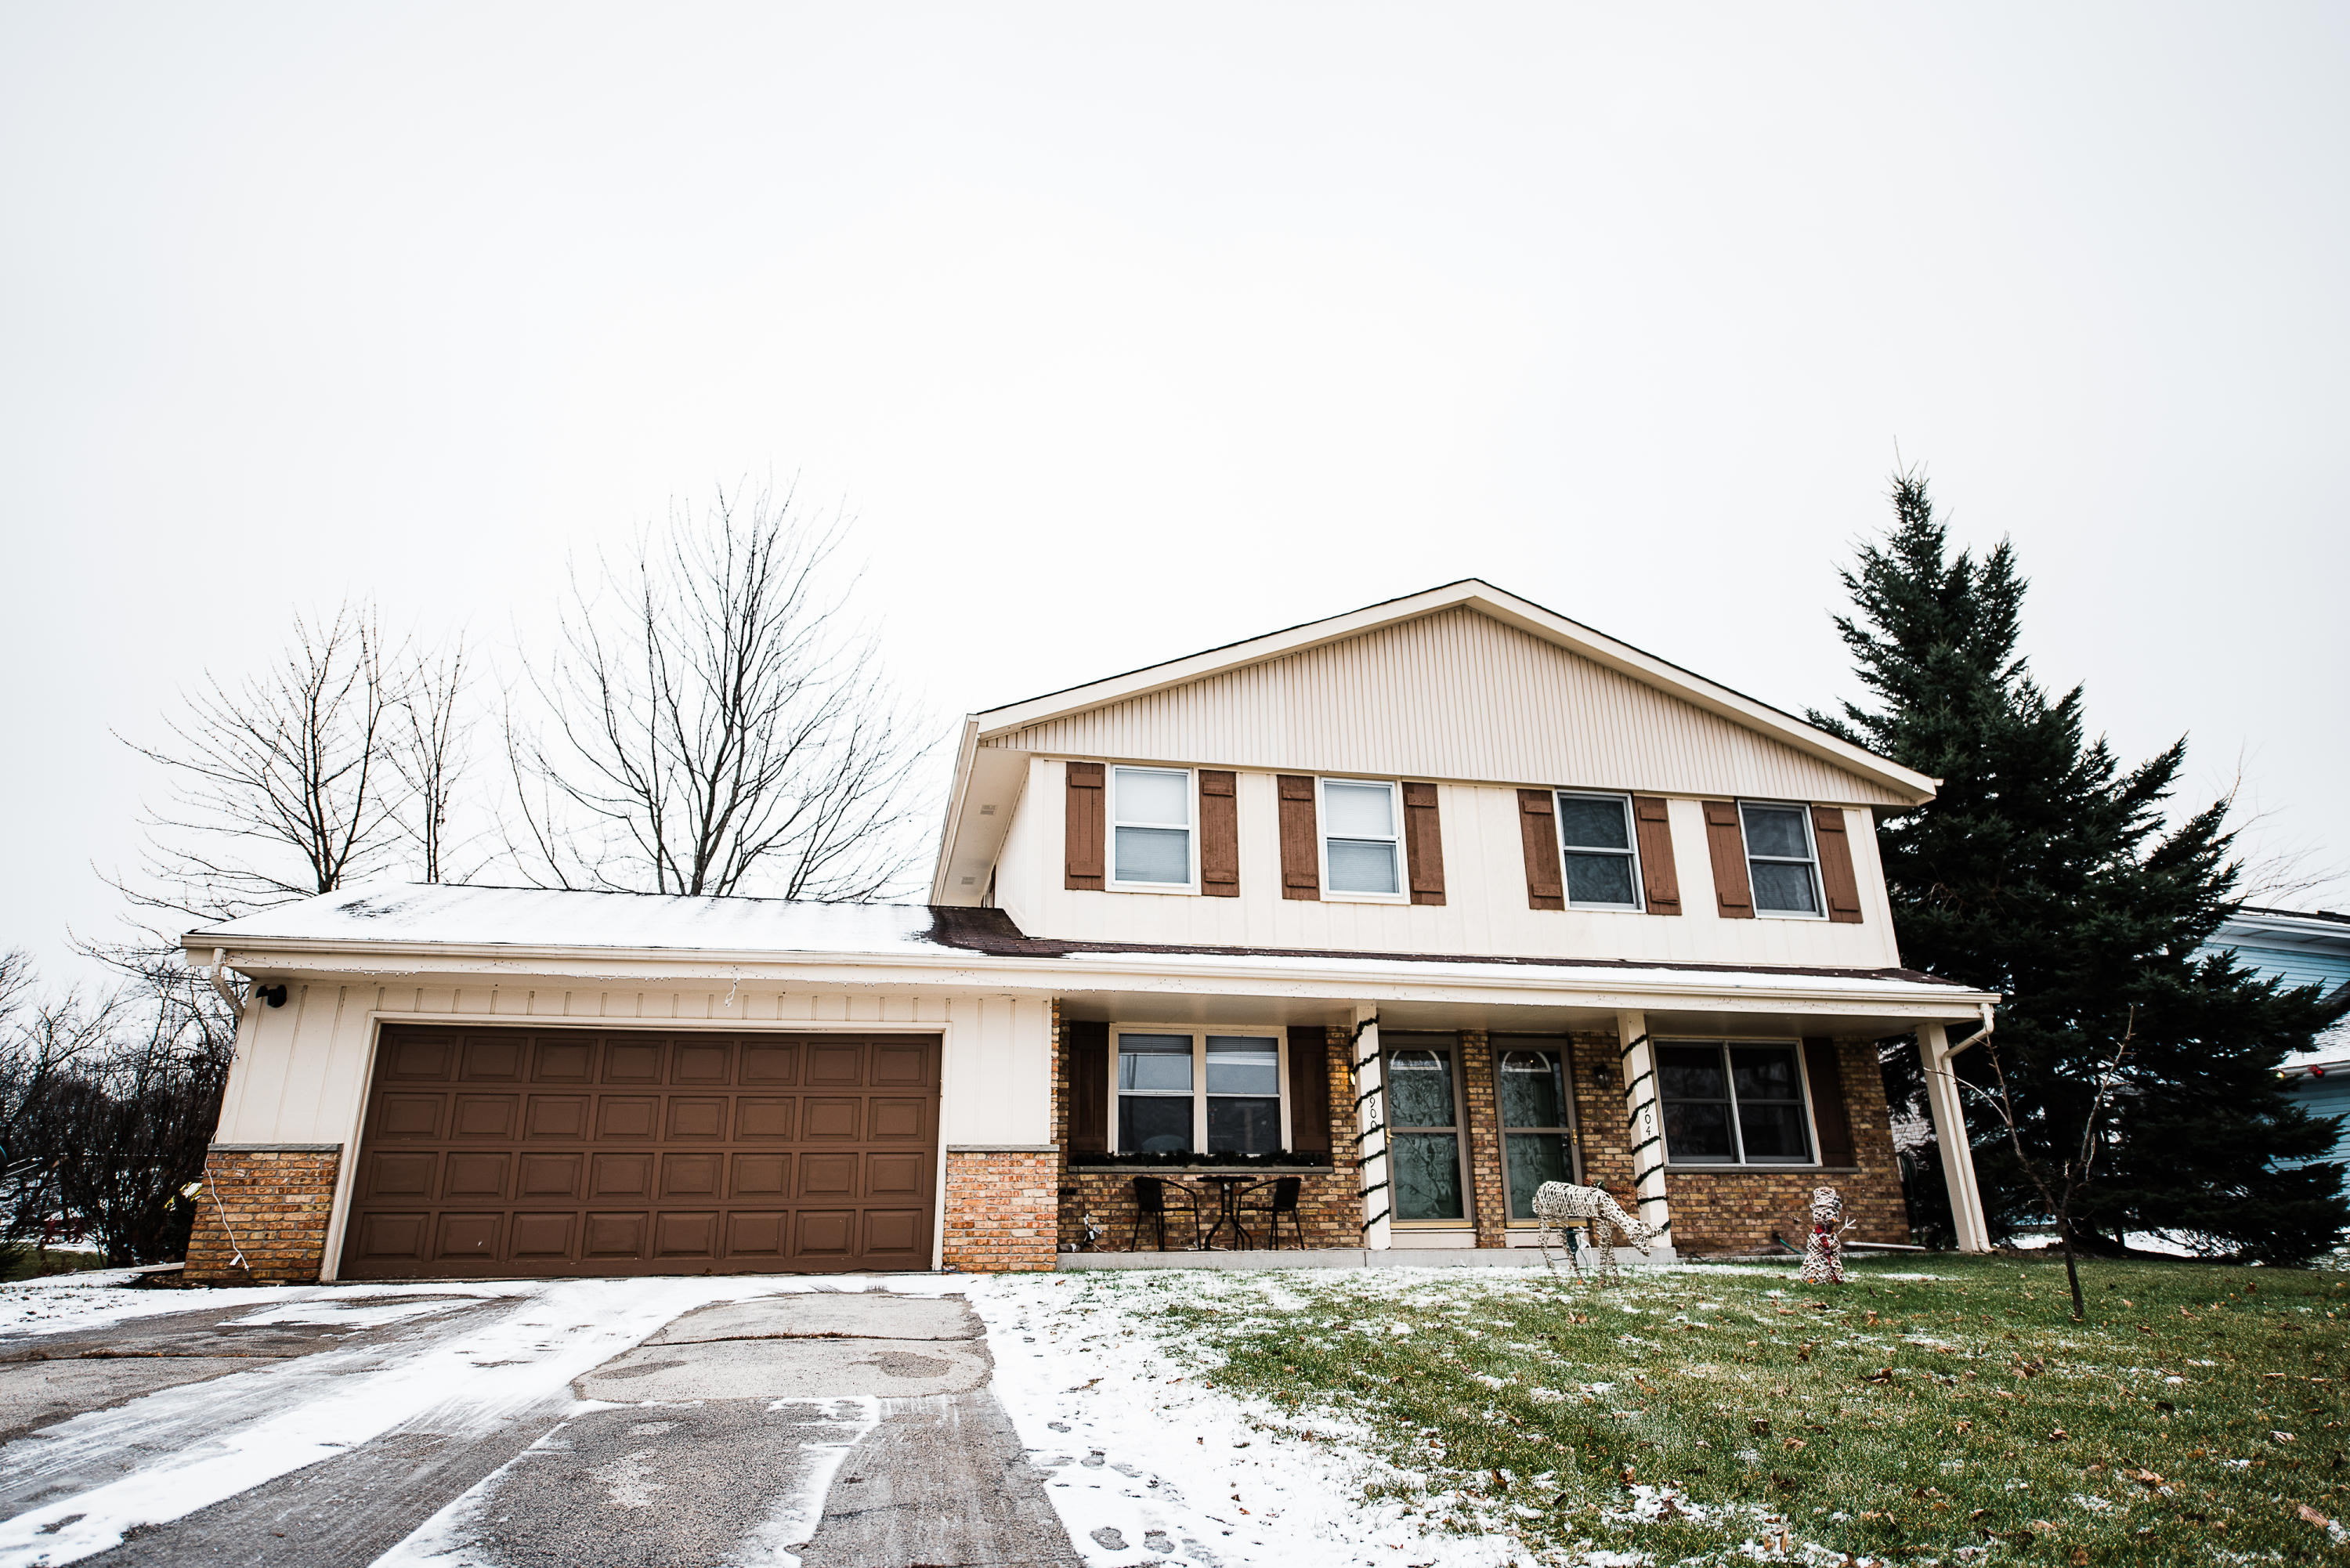 900 Imperial Dr, Hartland, Wisconsin 53029, 3 Bedrooms Bedrooms, 6 Rooms Rooms,1 BathroomBathrooms,Two-Family,For Sale,Imperial Dr,1,1615630